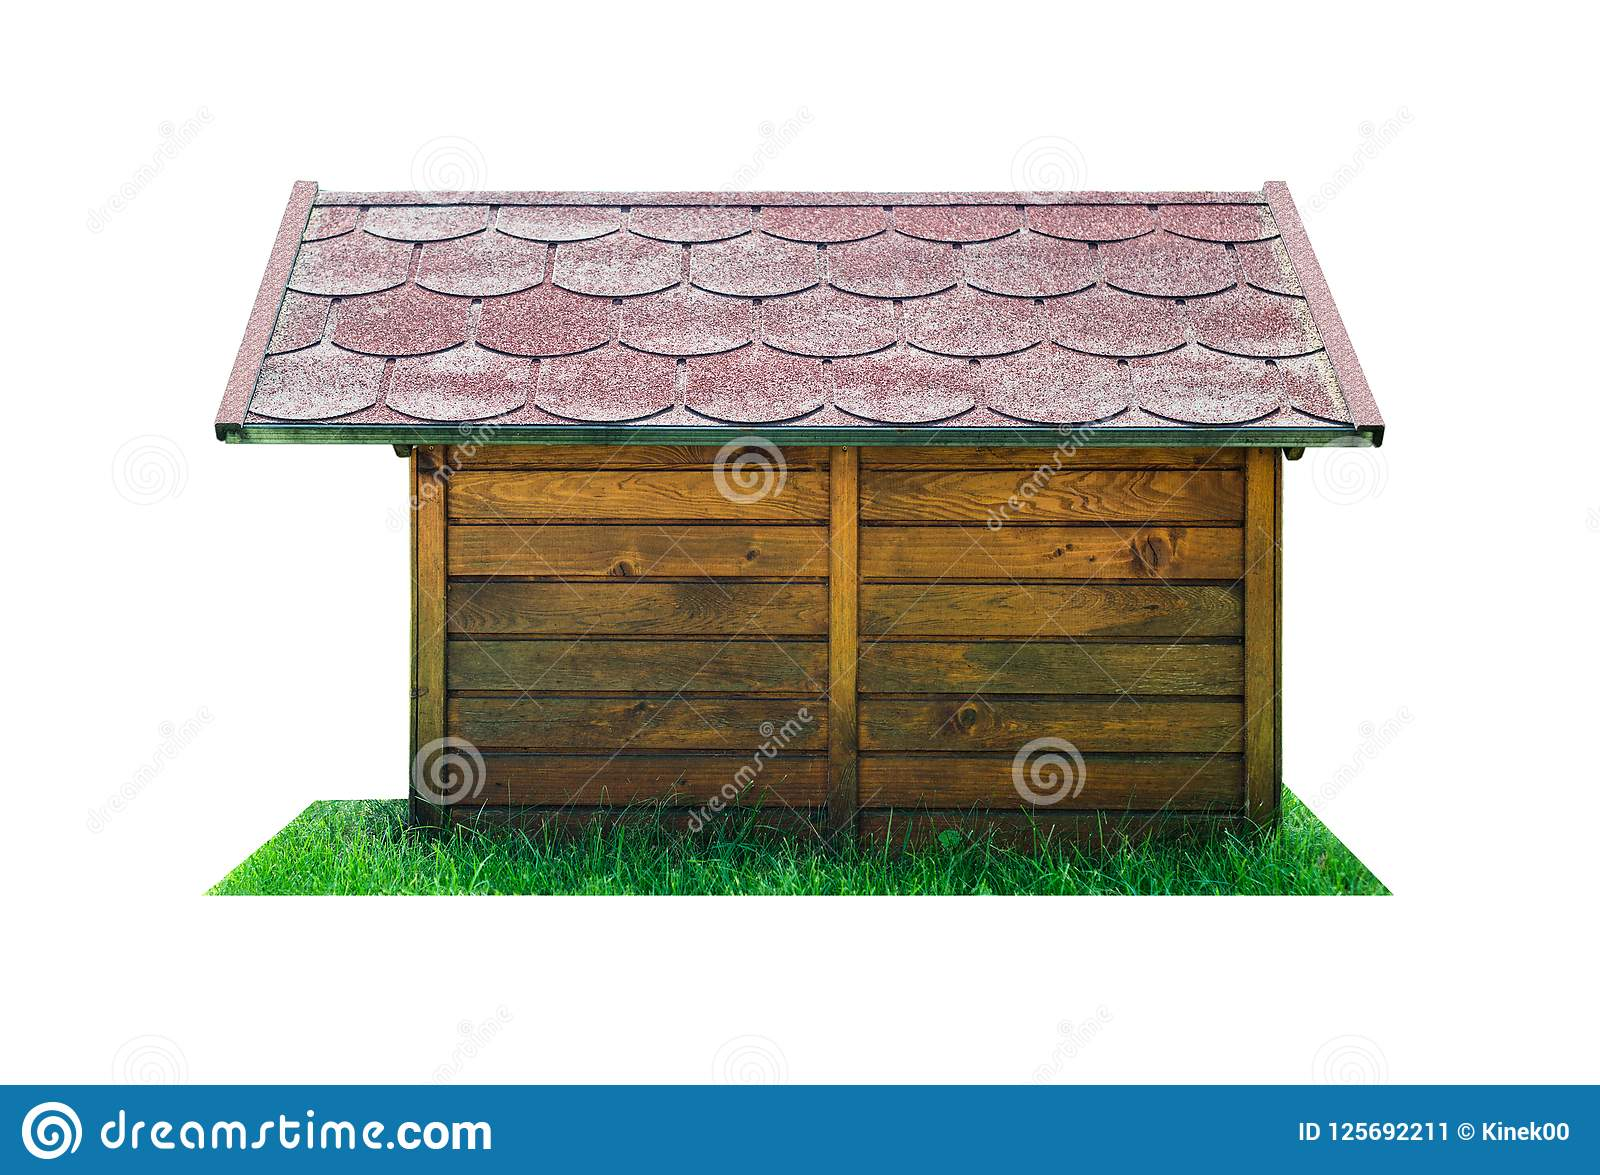 Side view of a wooden dog hut with a red roof, standing on the green grass. Isolated on a white background with a clipping path.